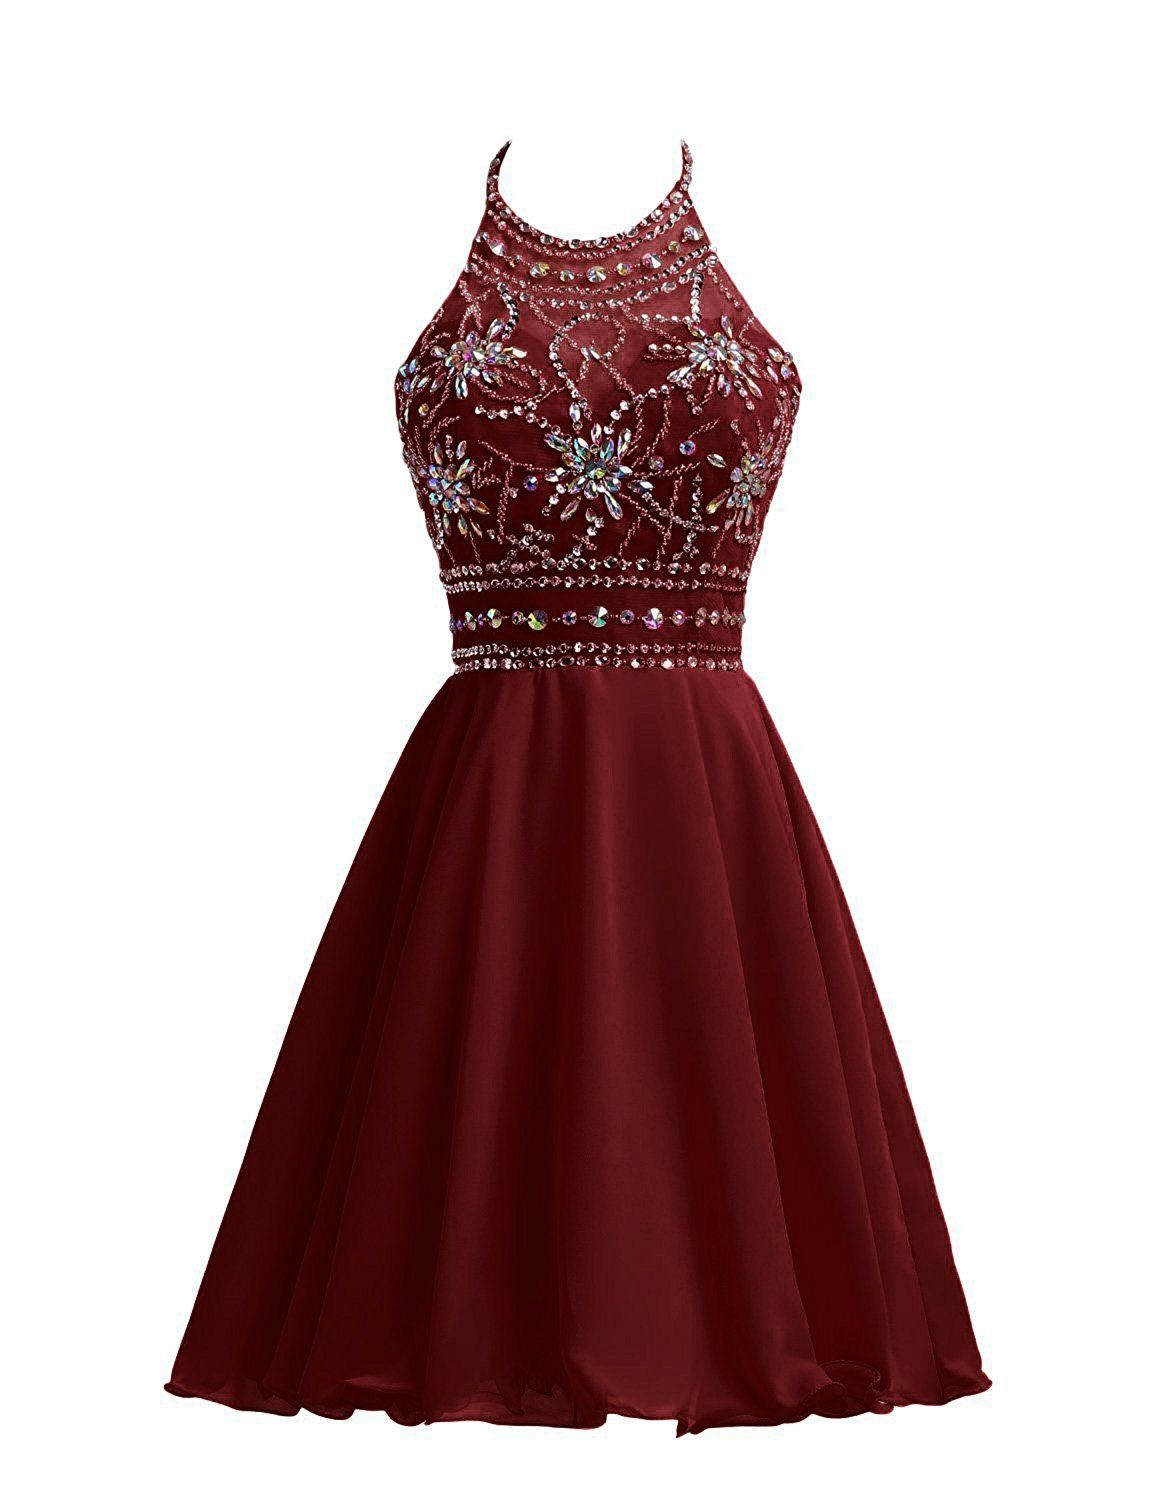 e9a2c370a8e5 Amazon.com: Belle House Short Chiffon Homecoming Dresses For Juniors Halter  Prom Party Gowns: Clothing